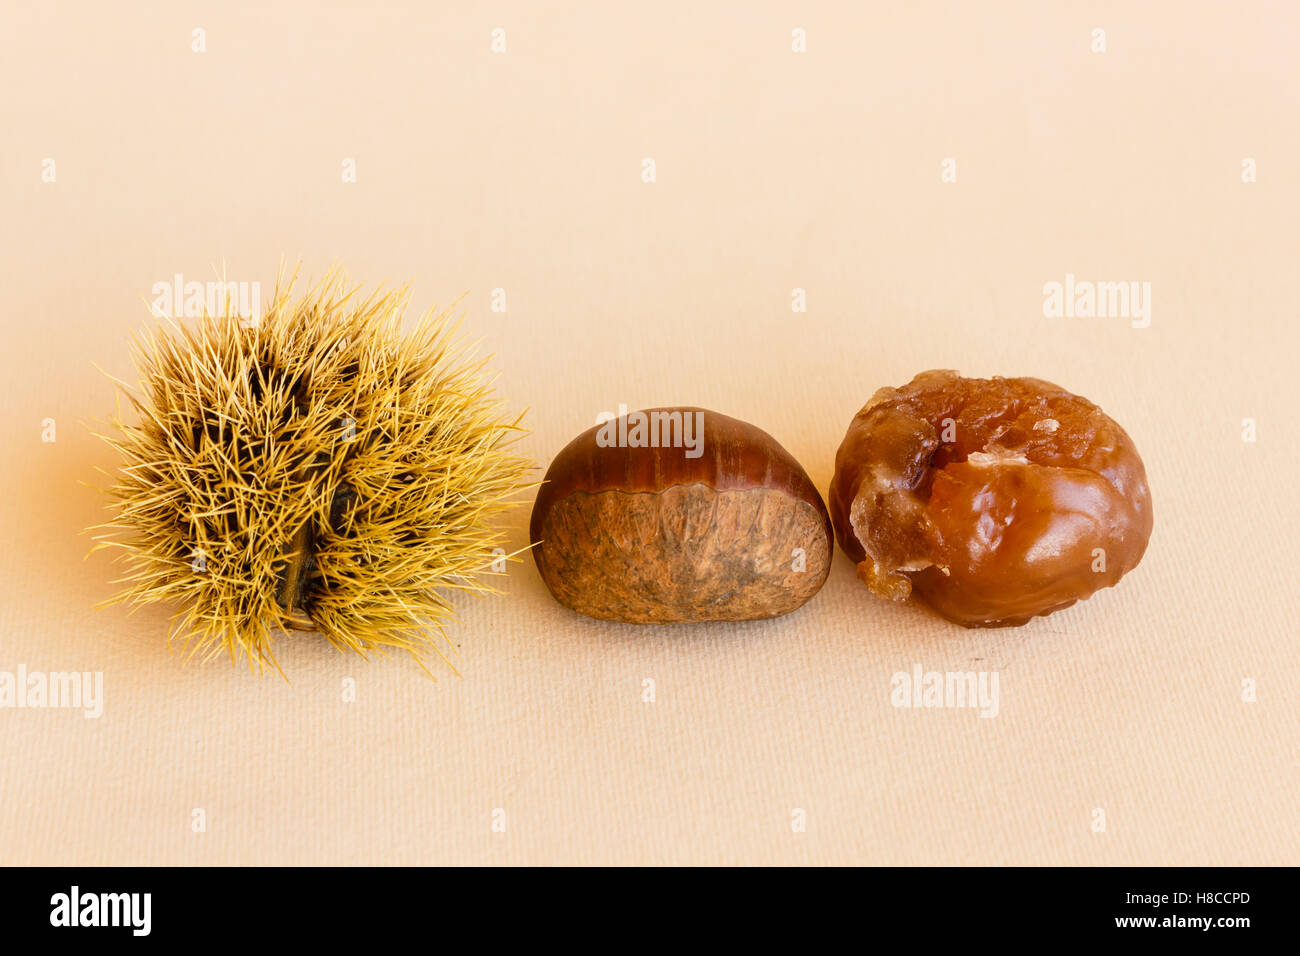 the chestnut husk becomes maturing from green to dark brown and contains the chestnut , which worked becomes marron Stock Photo